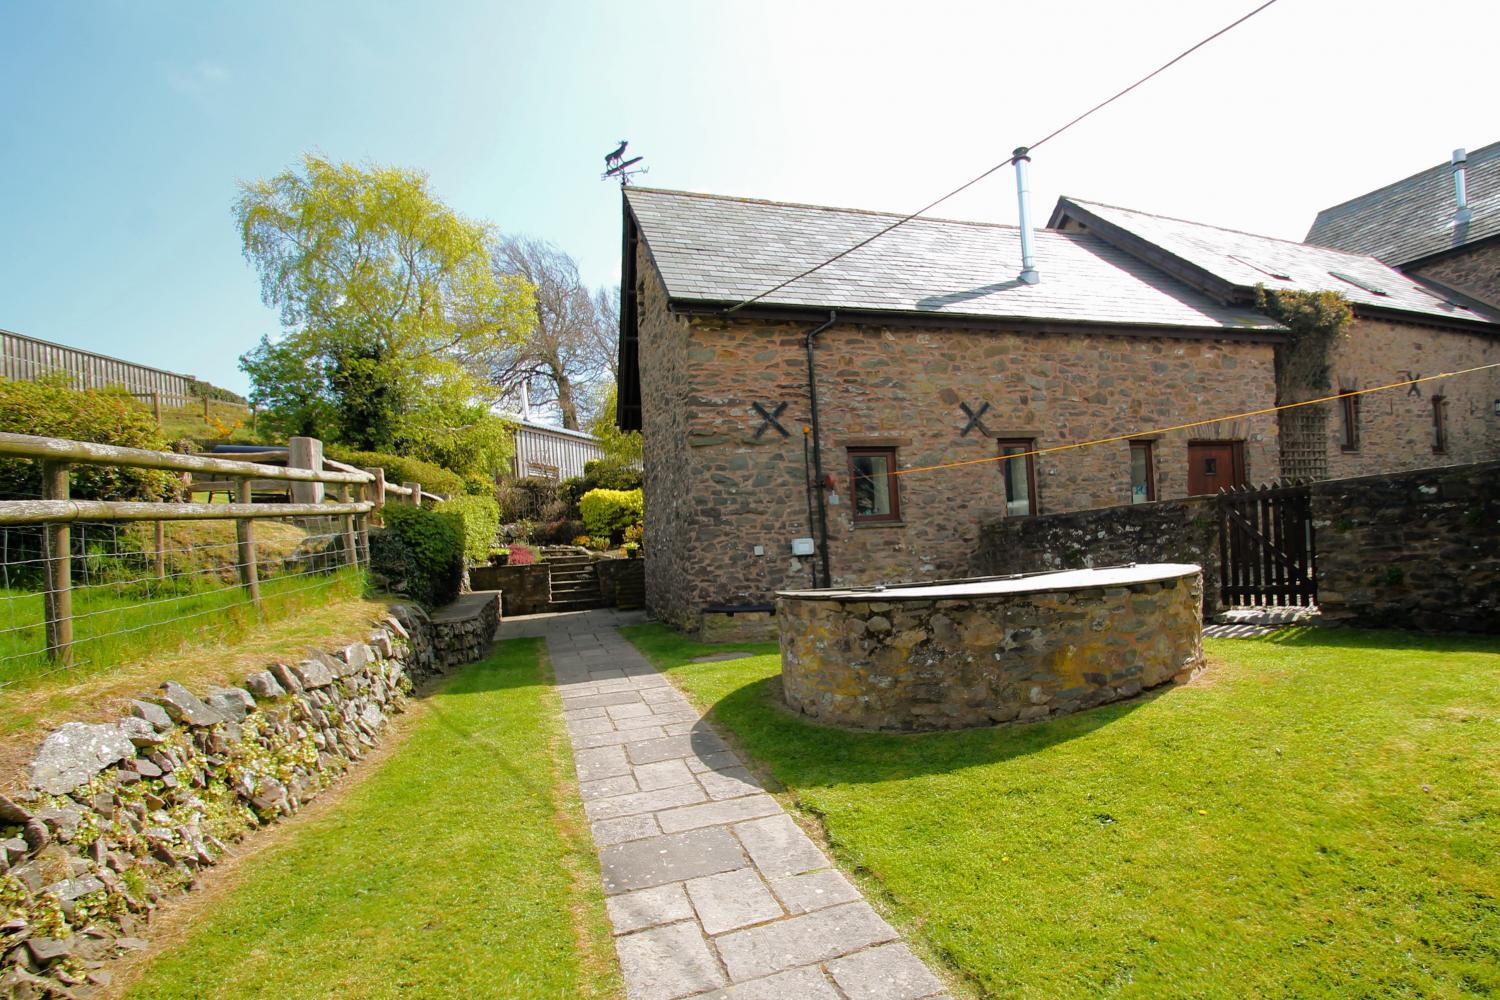 Yenworthy Mill self catering accommodation Exmoor countisbury oare north devon